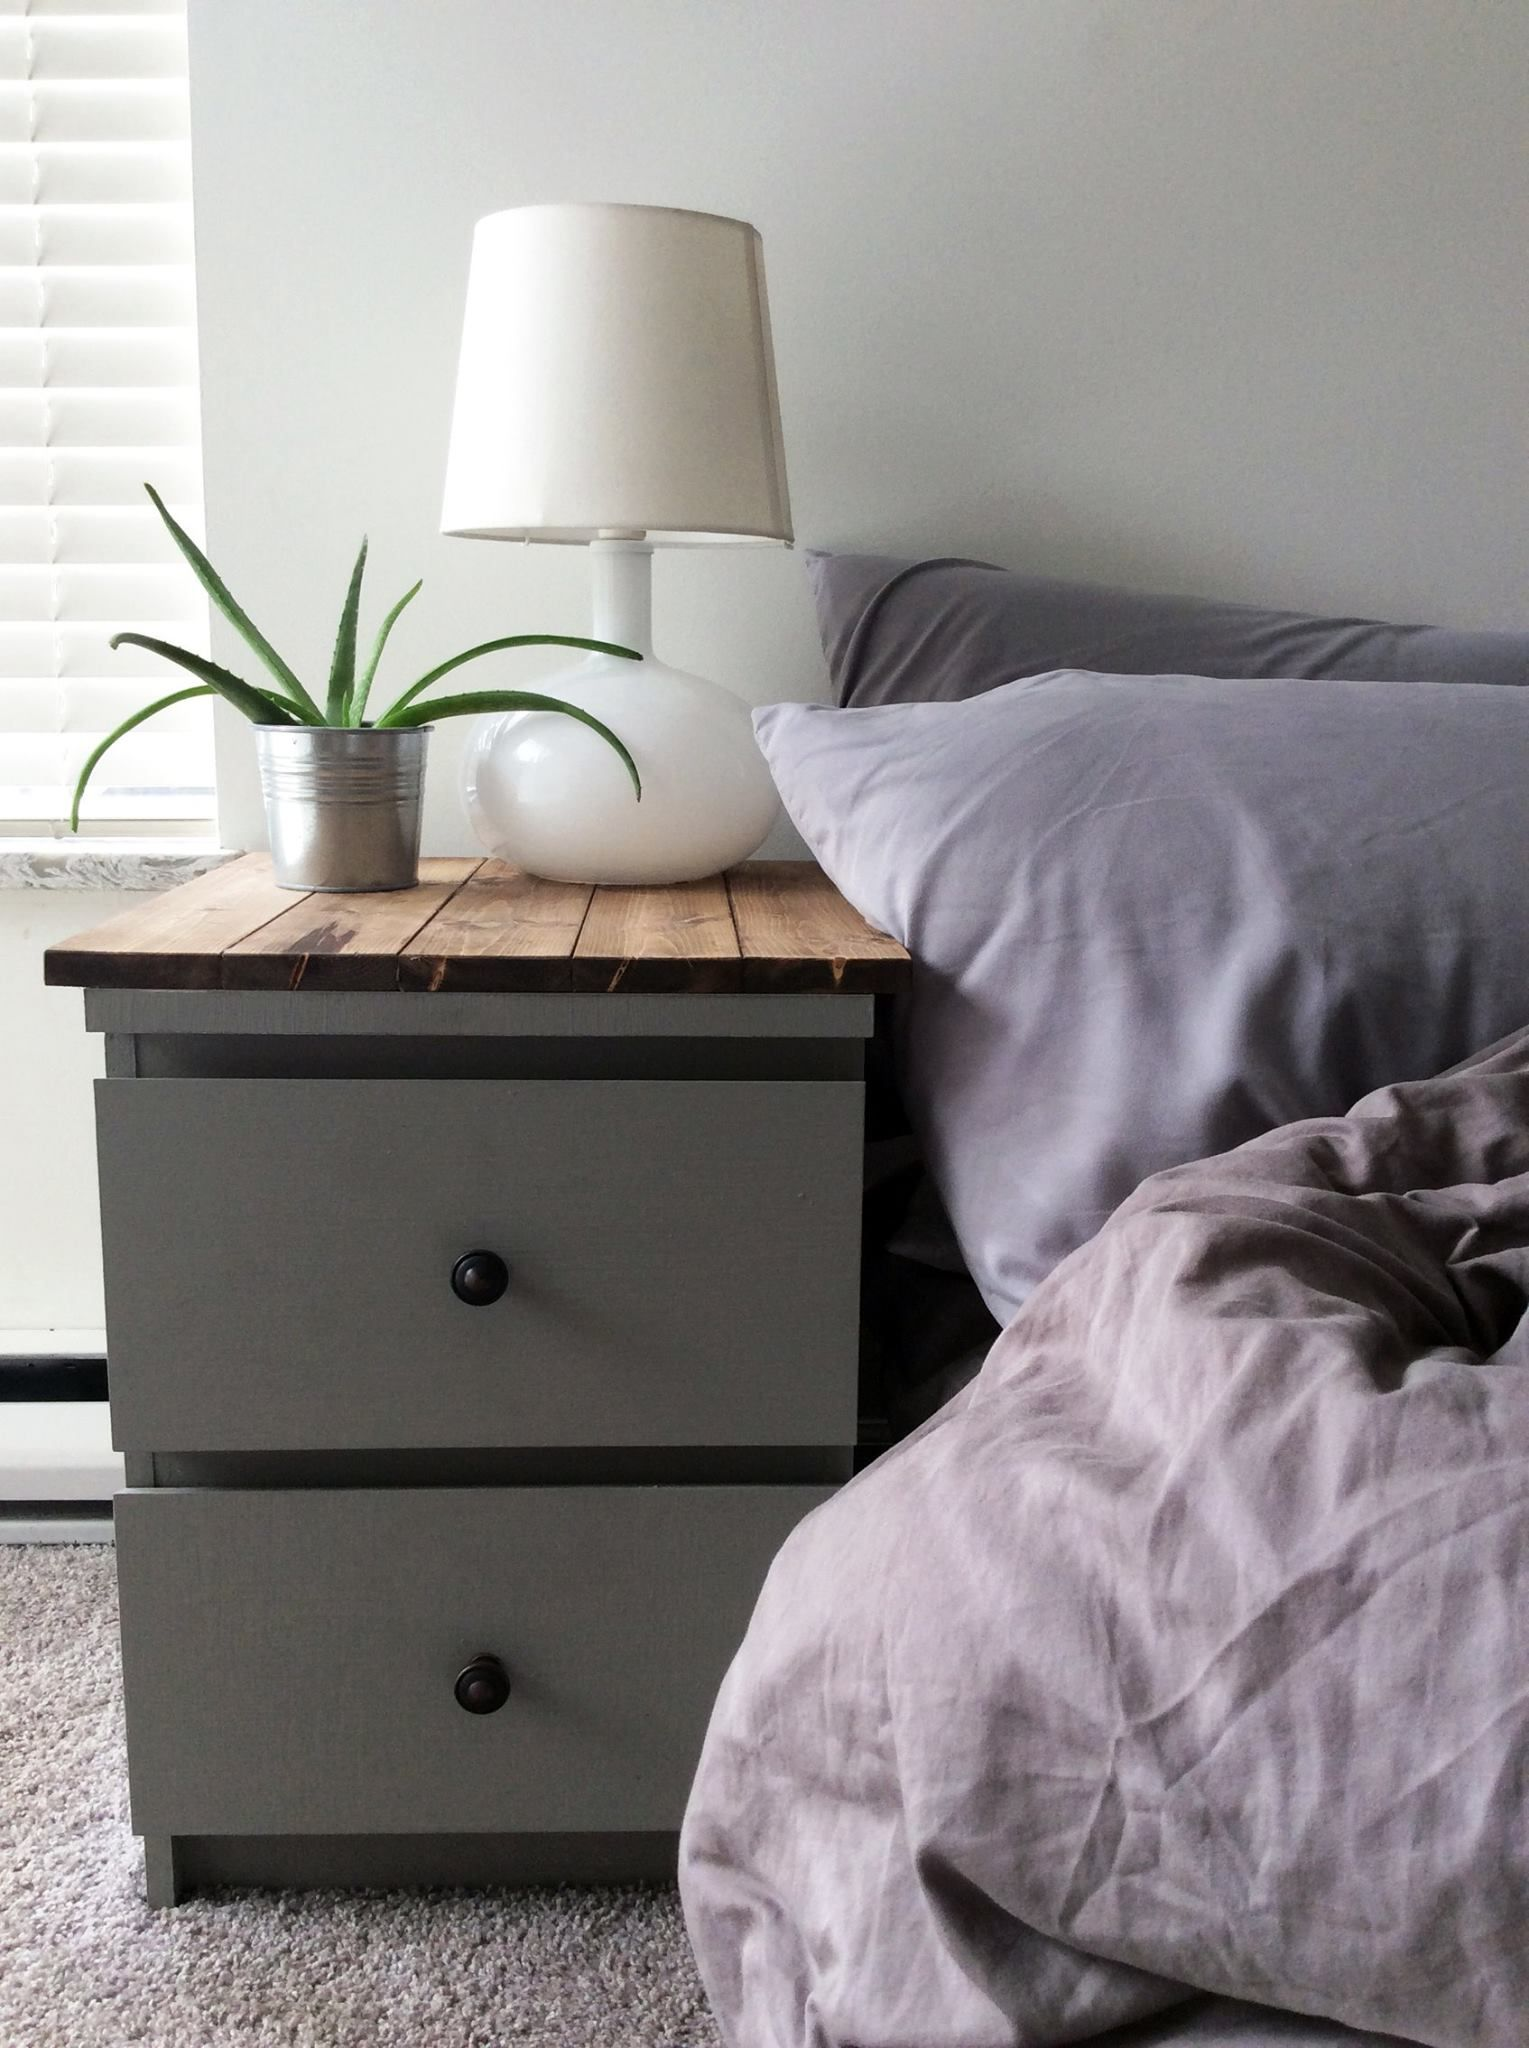 diy ikea malm hack! a few coats of paint, some 1x4's and a couple of